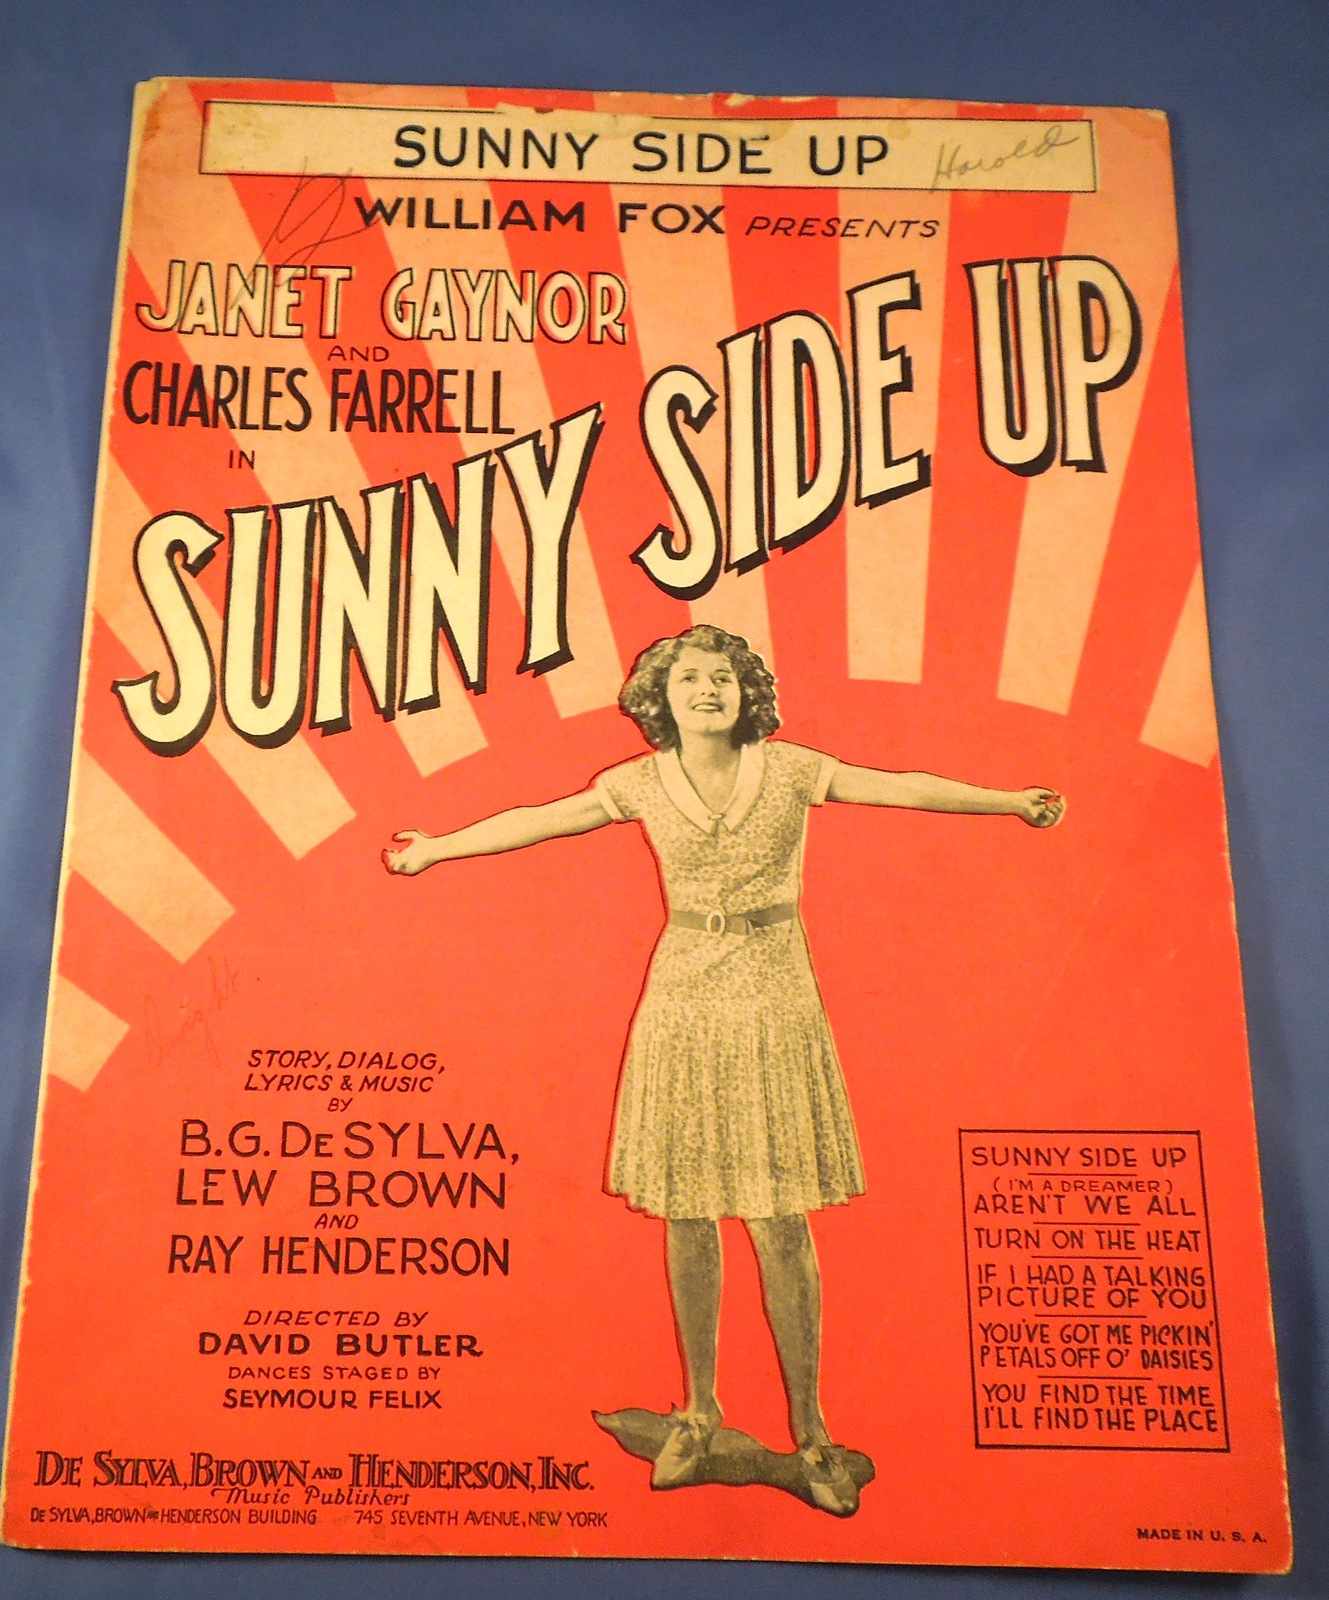 25 1929 sunny side up by desylva  brown    henderson cr  1929 desylva  brown   henderson cond f spine sep writing on cover gen wear and age and handling discolor  6 pgs 9x12 pd .12 05 12  7679